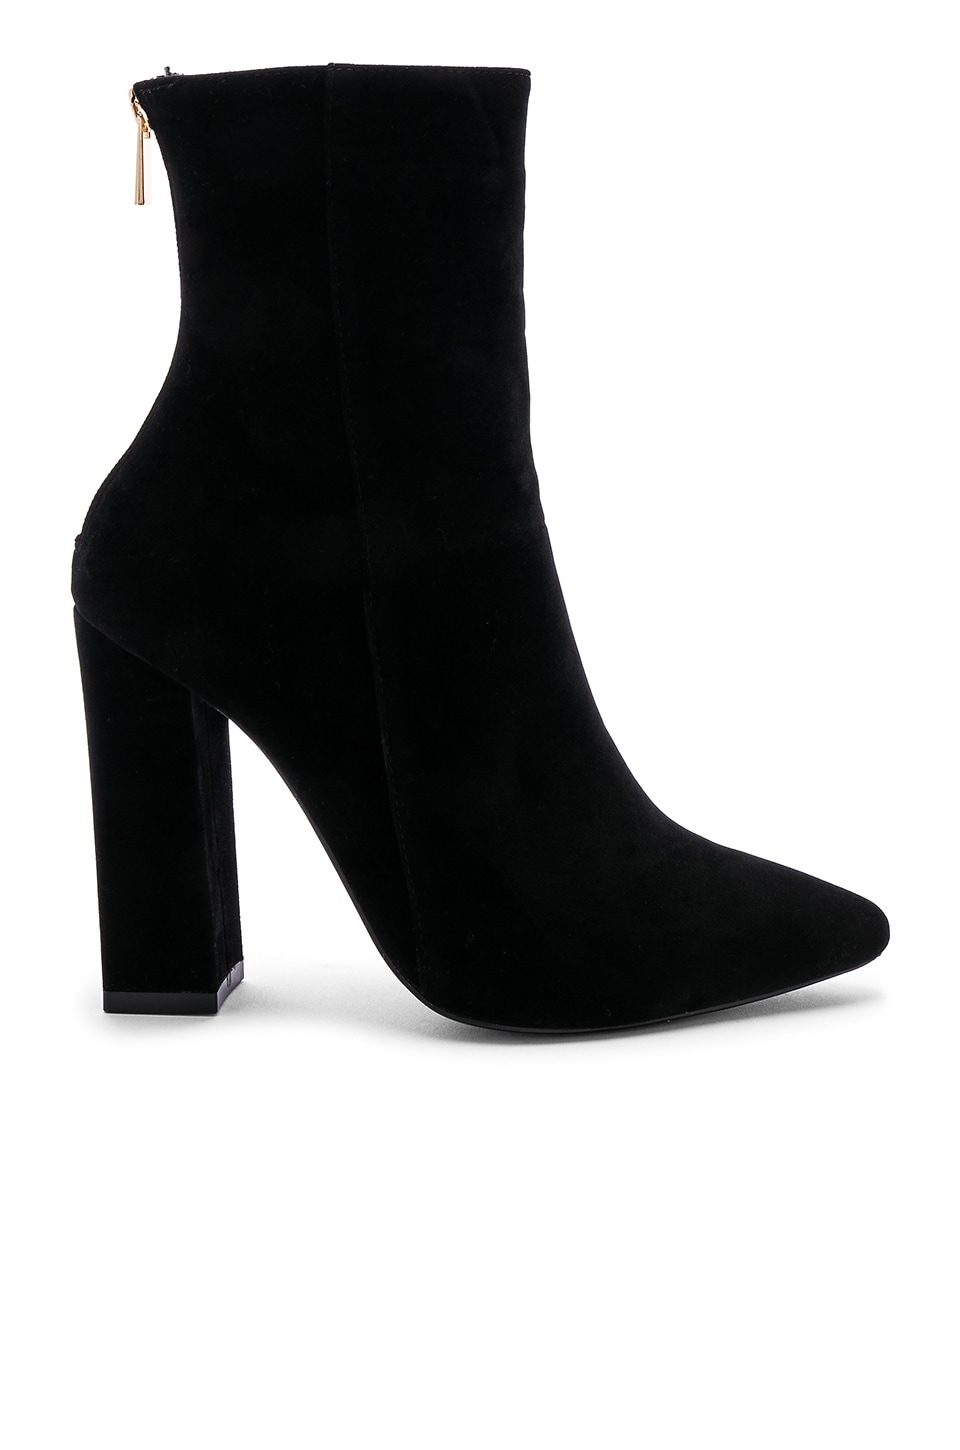 RAYE Draper Bootie in Black